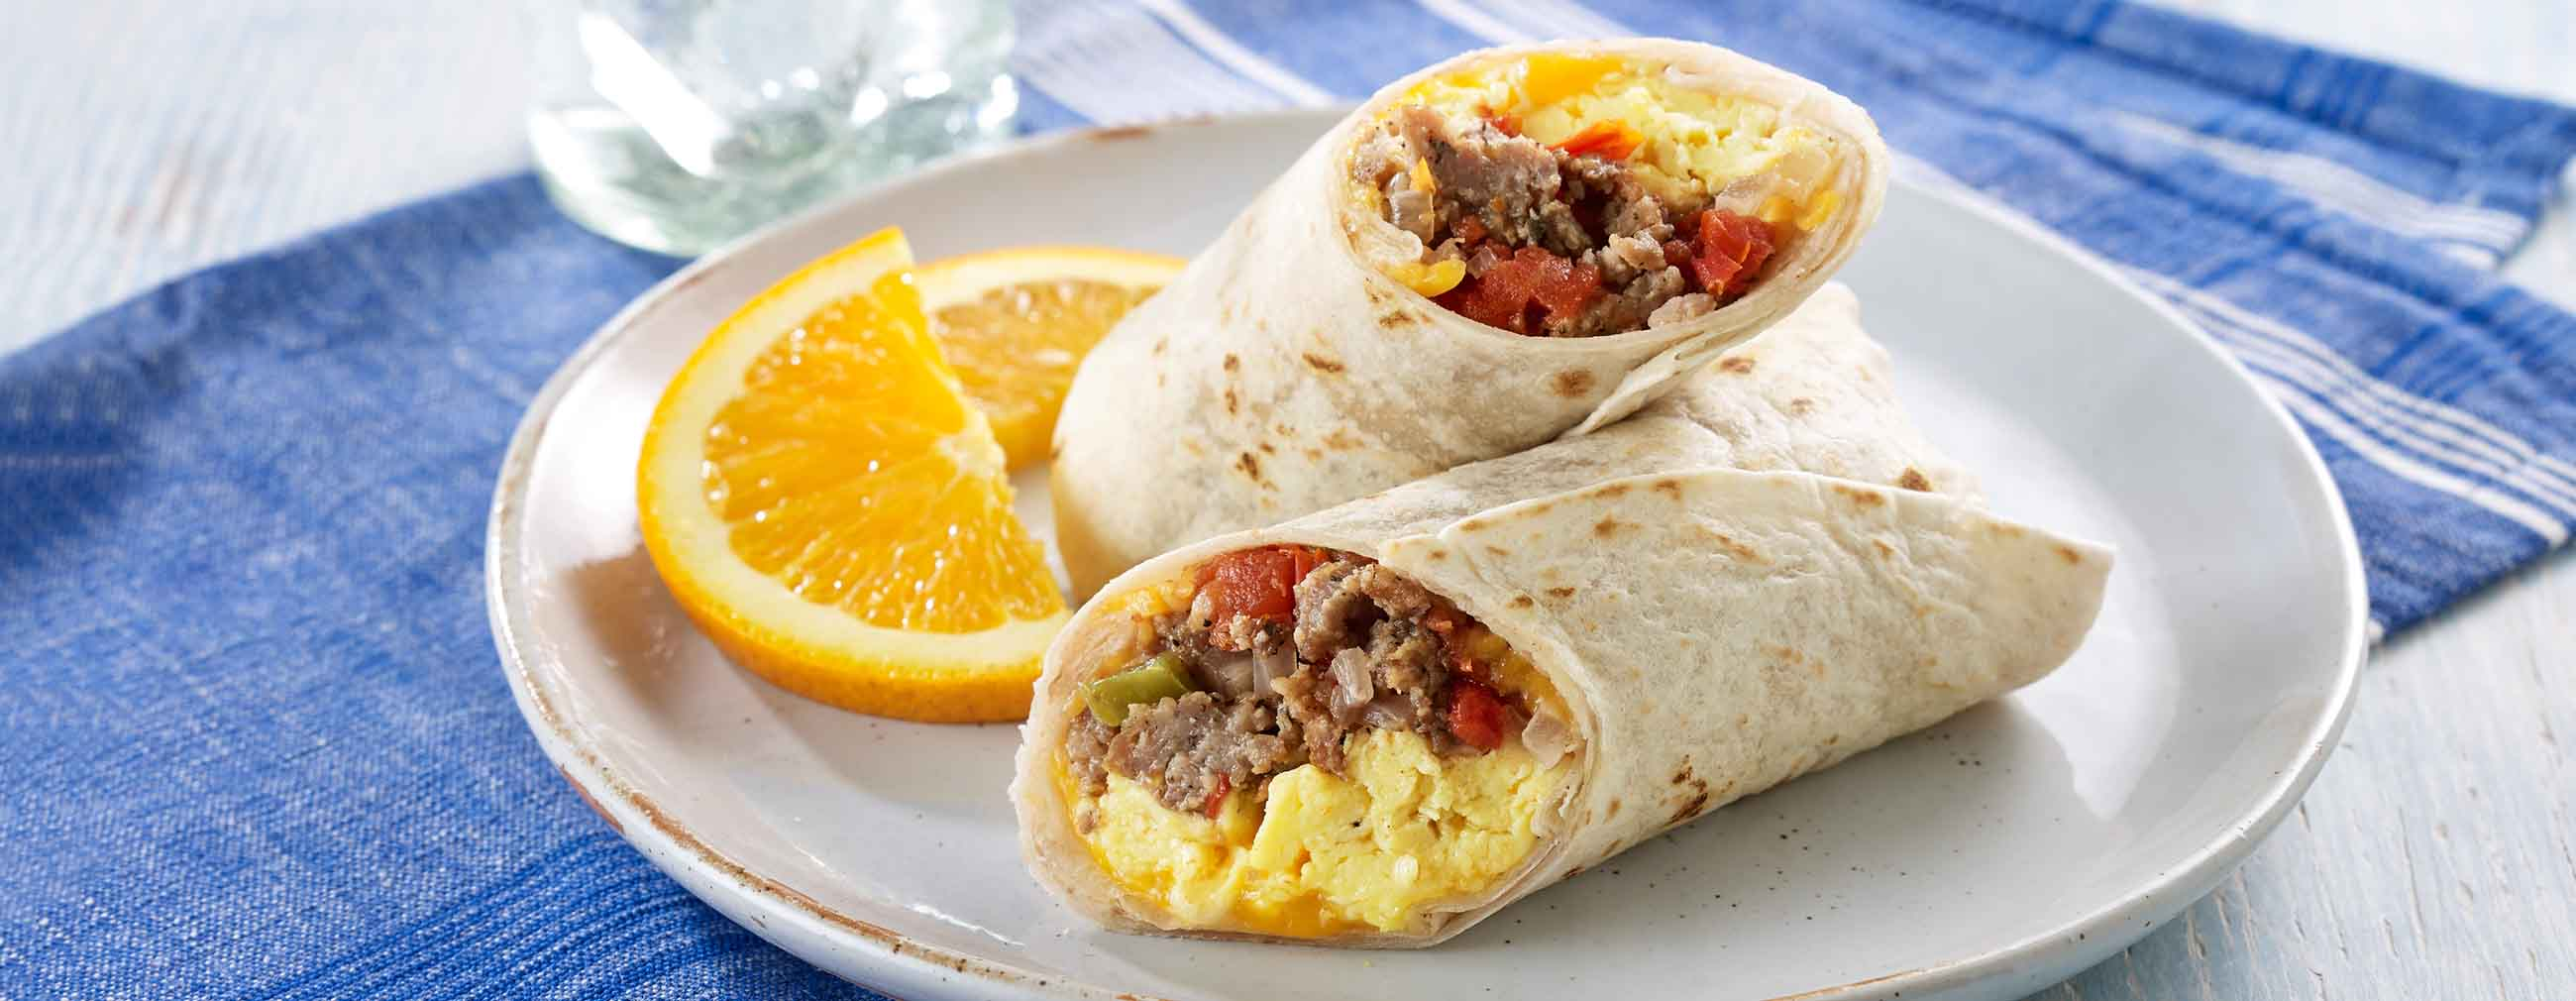 Sausage and Scrambled Egg Burritos